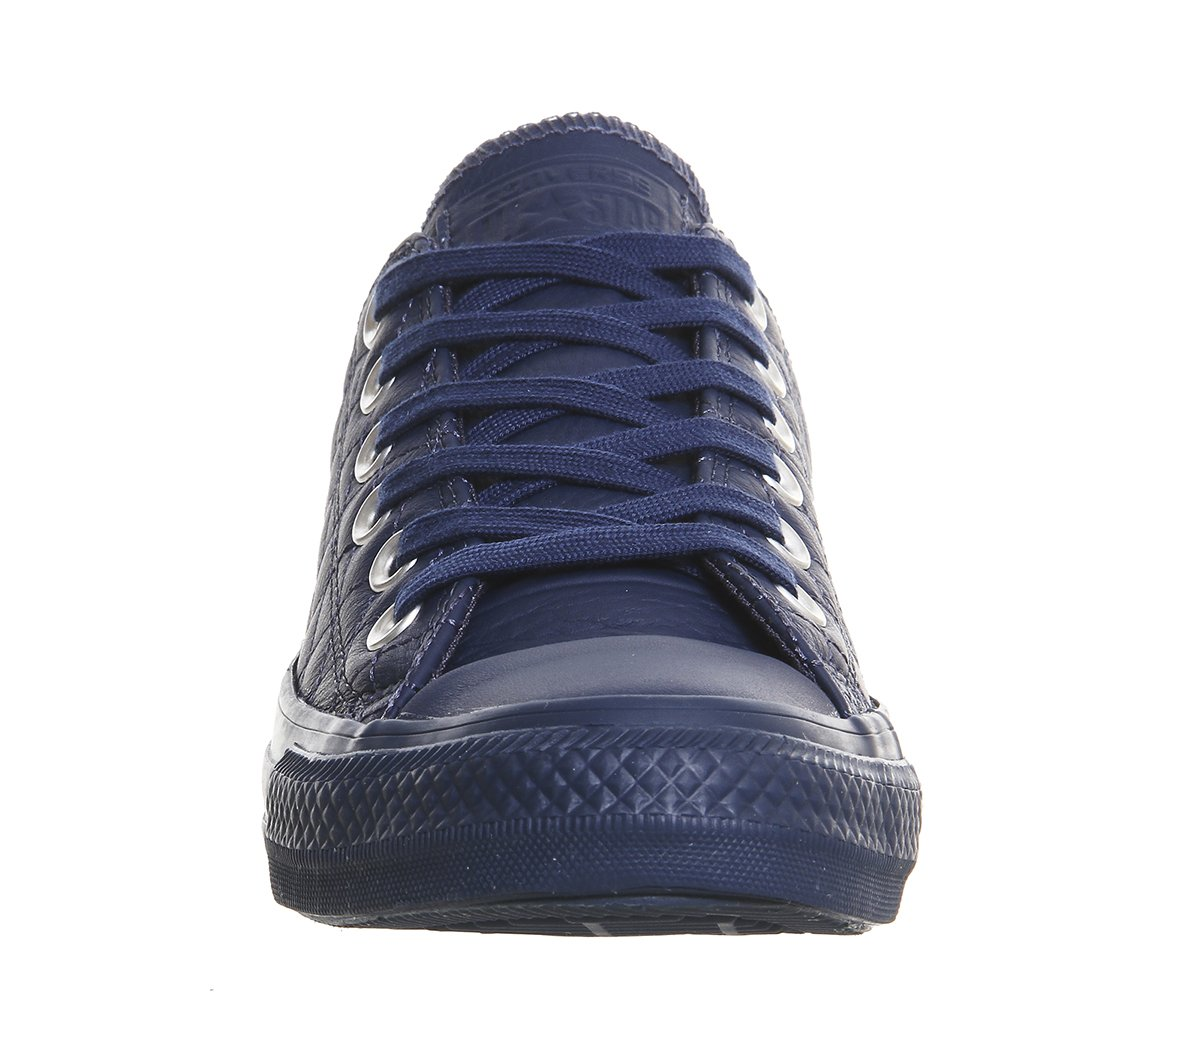 navy blue leather converse